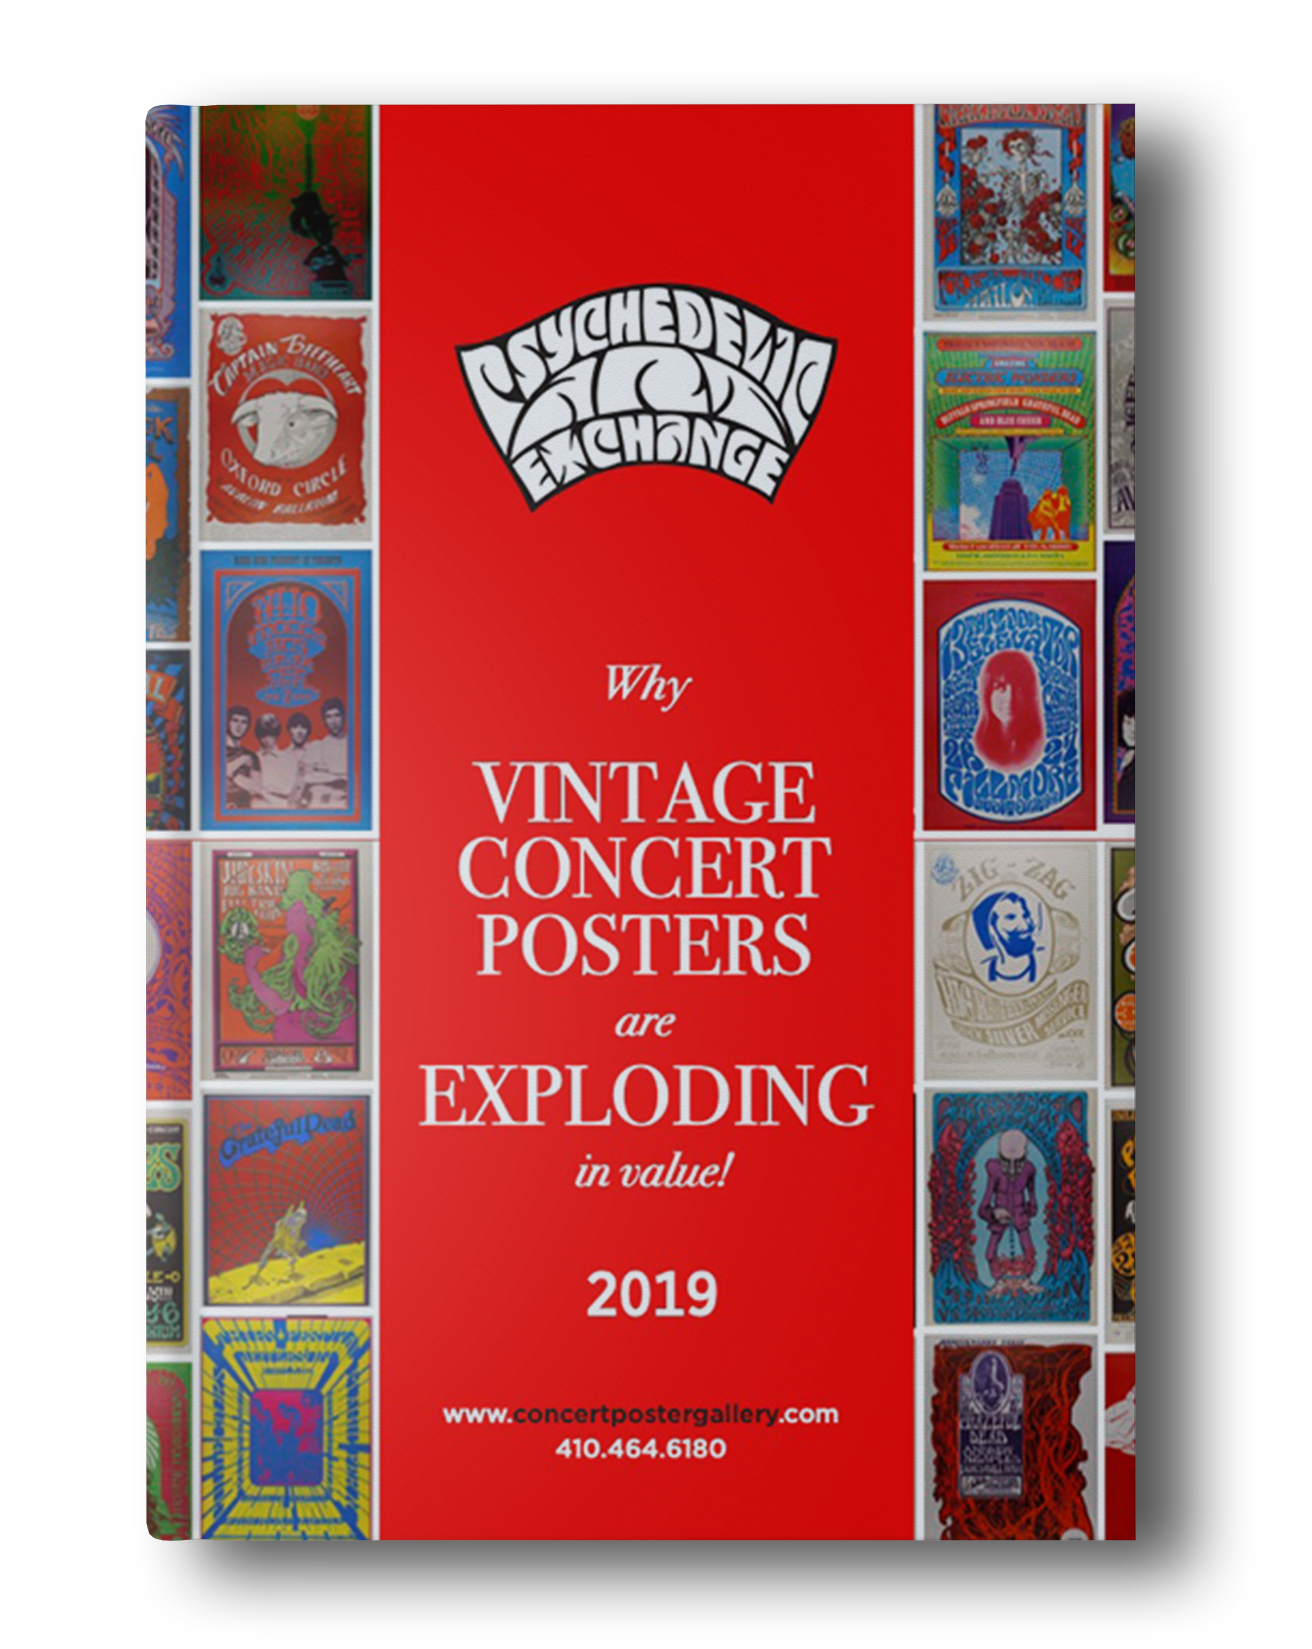 Psychedelic Art Exchange – Why Vintage Concert Posters are Exploding in Value! 2019 – Free Collector's Guide